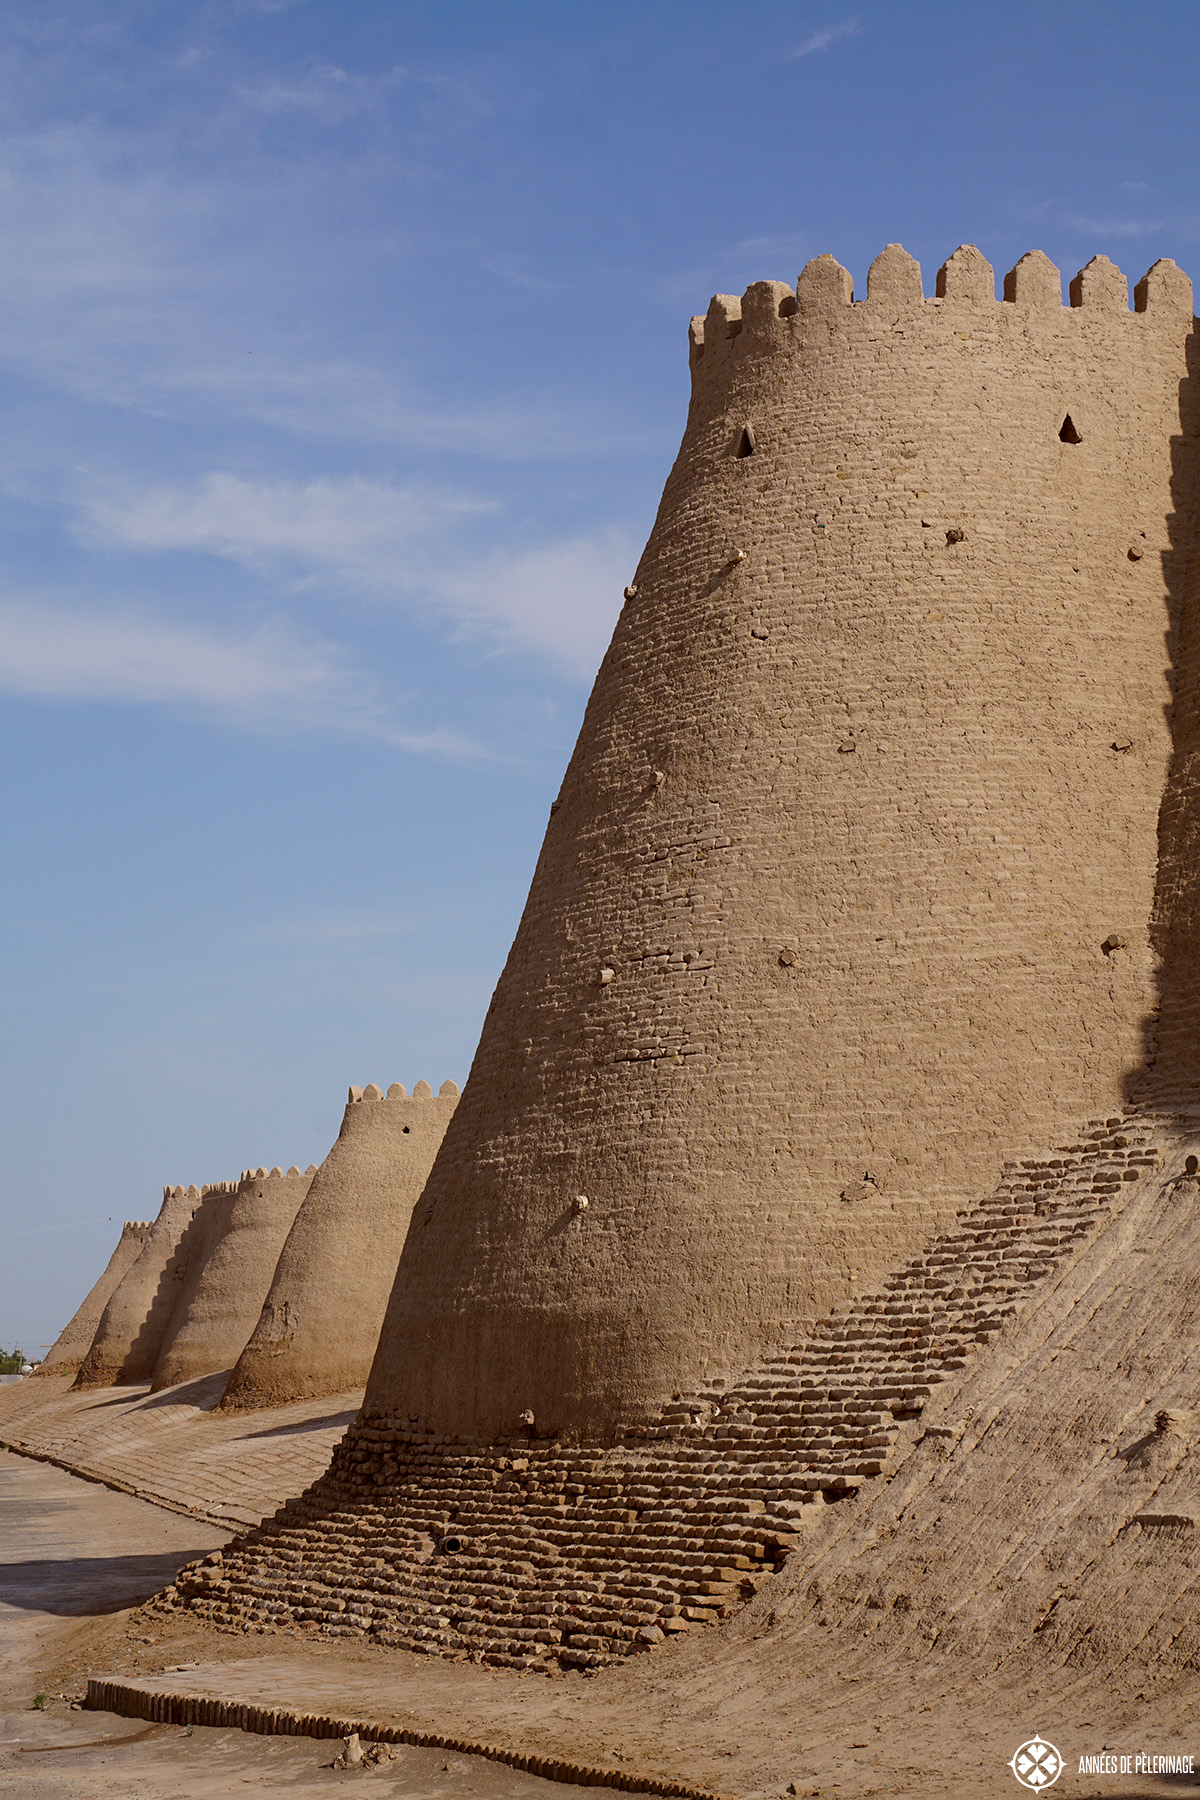 The city wall of Khiva, Uzbekistan